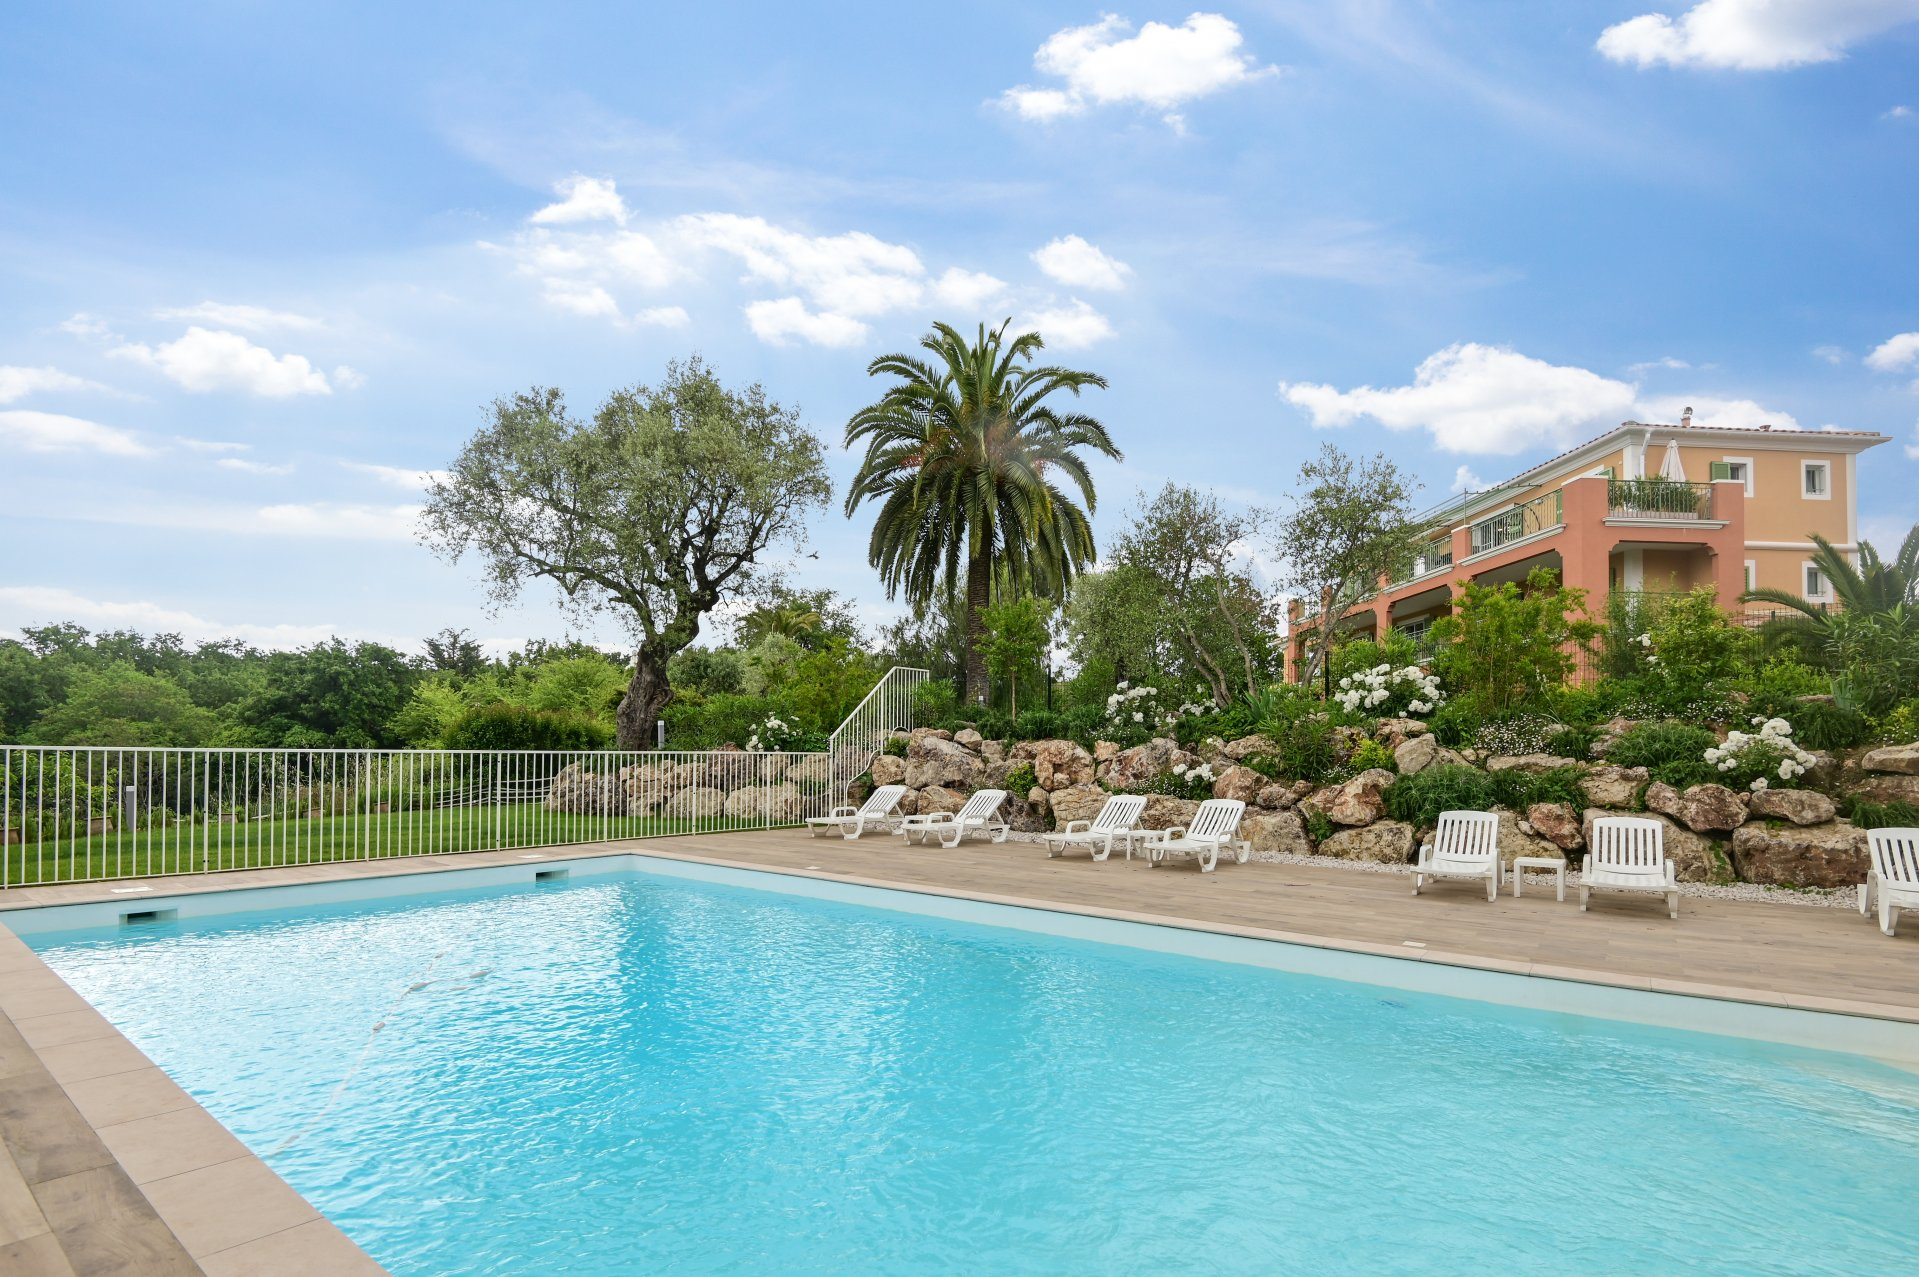 Joint sole agent – Roquefort les Pins- 2 bedroom apartment - Terrasse - Pool